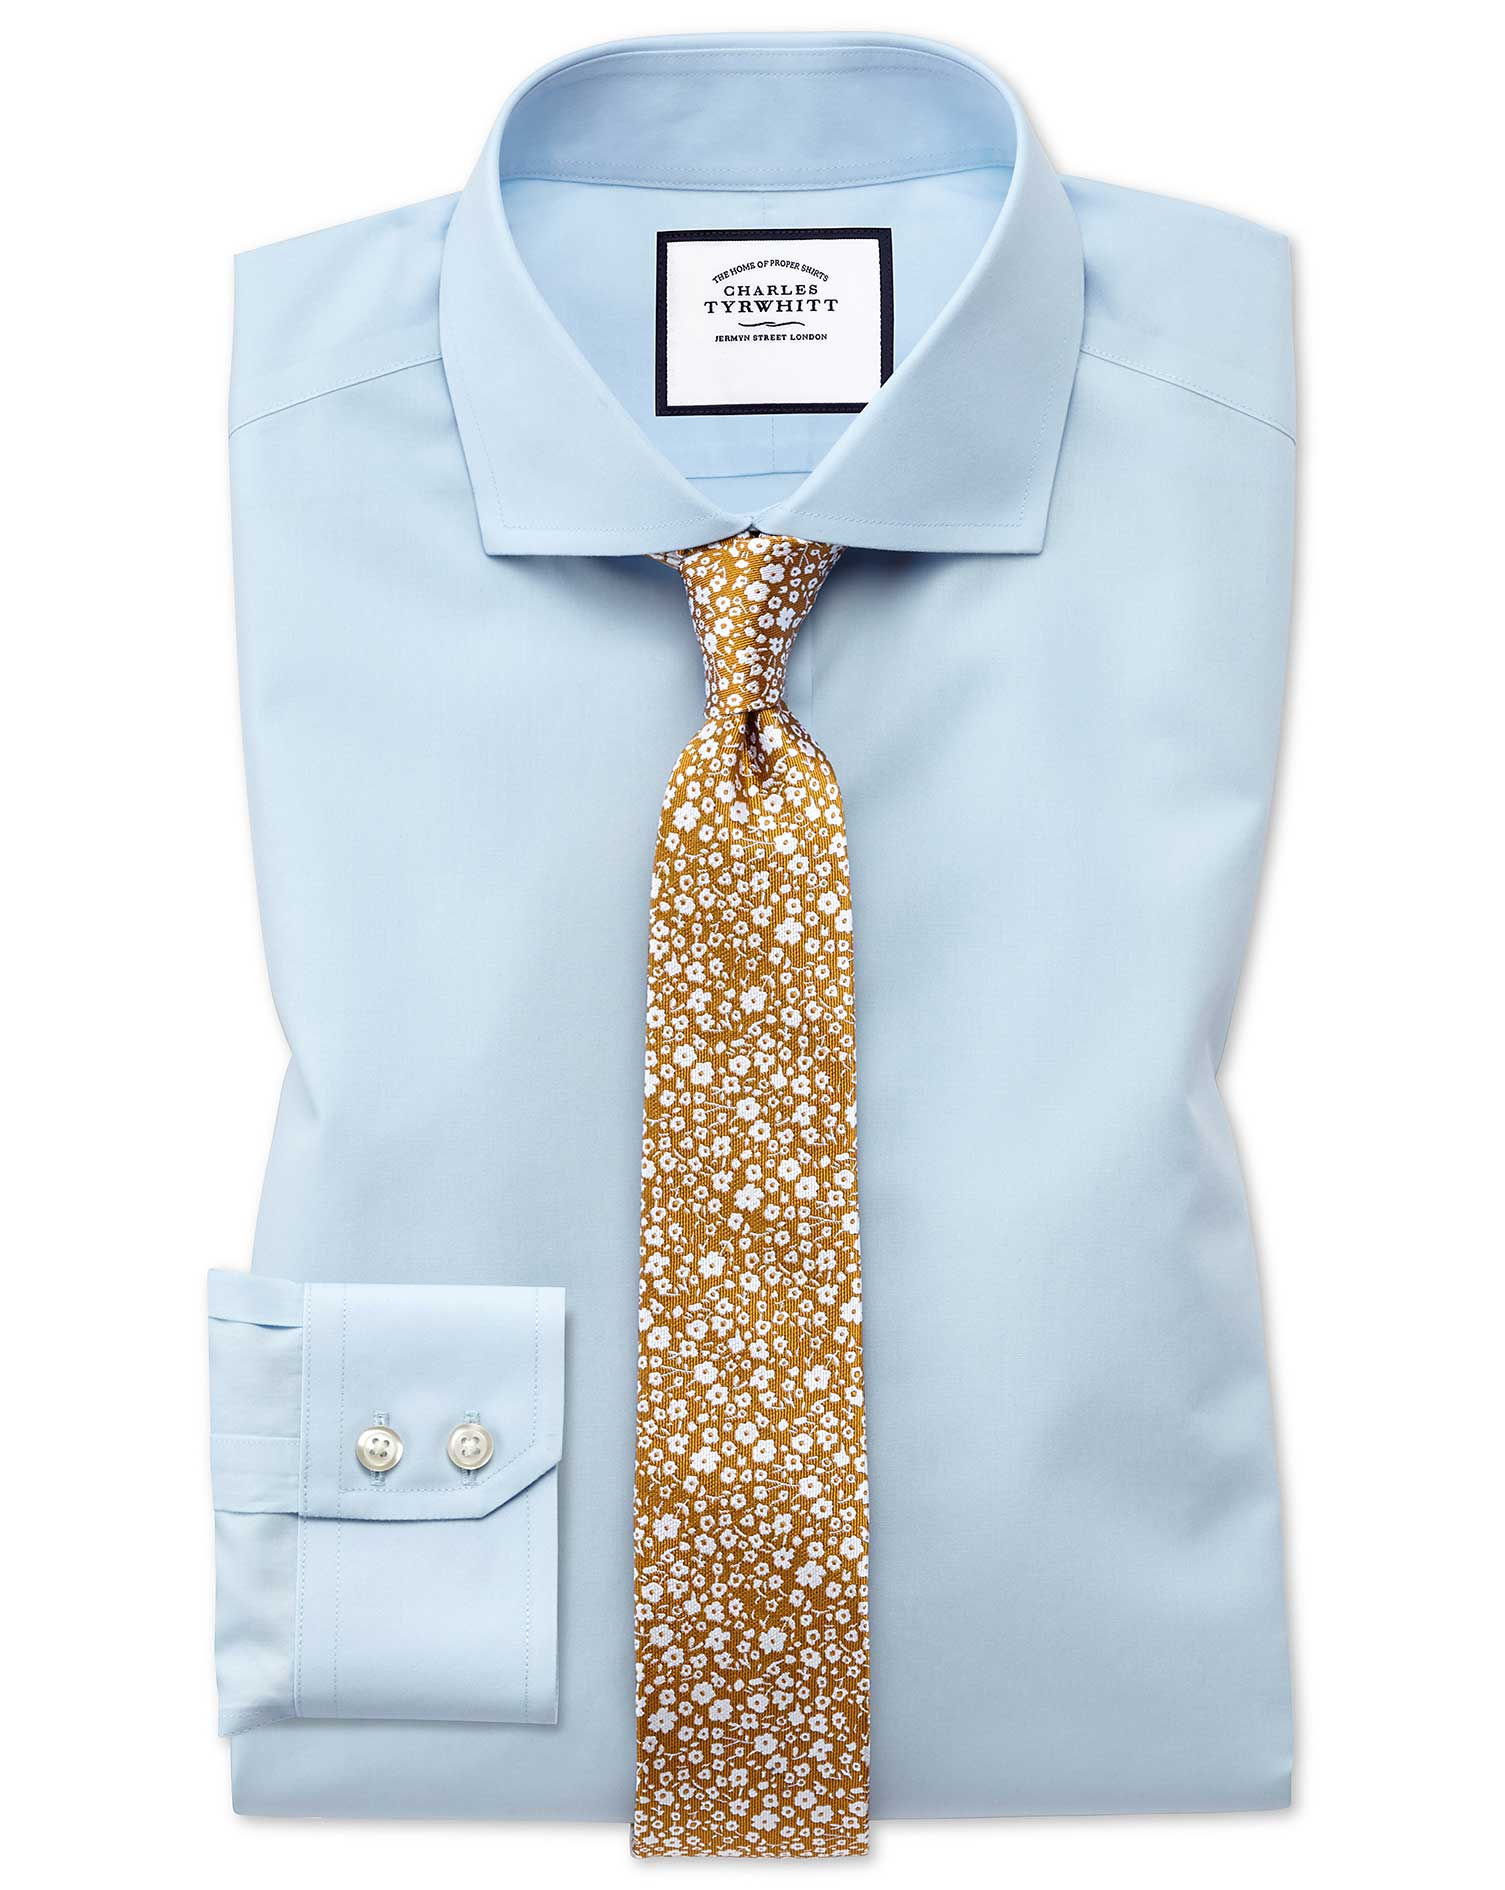 Classic Fit Cutaway Non-Iron Natural Cool Sky Blue Cotton Formal Shirt Single Cuff Size 16.5/34 by C